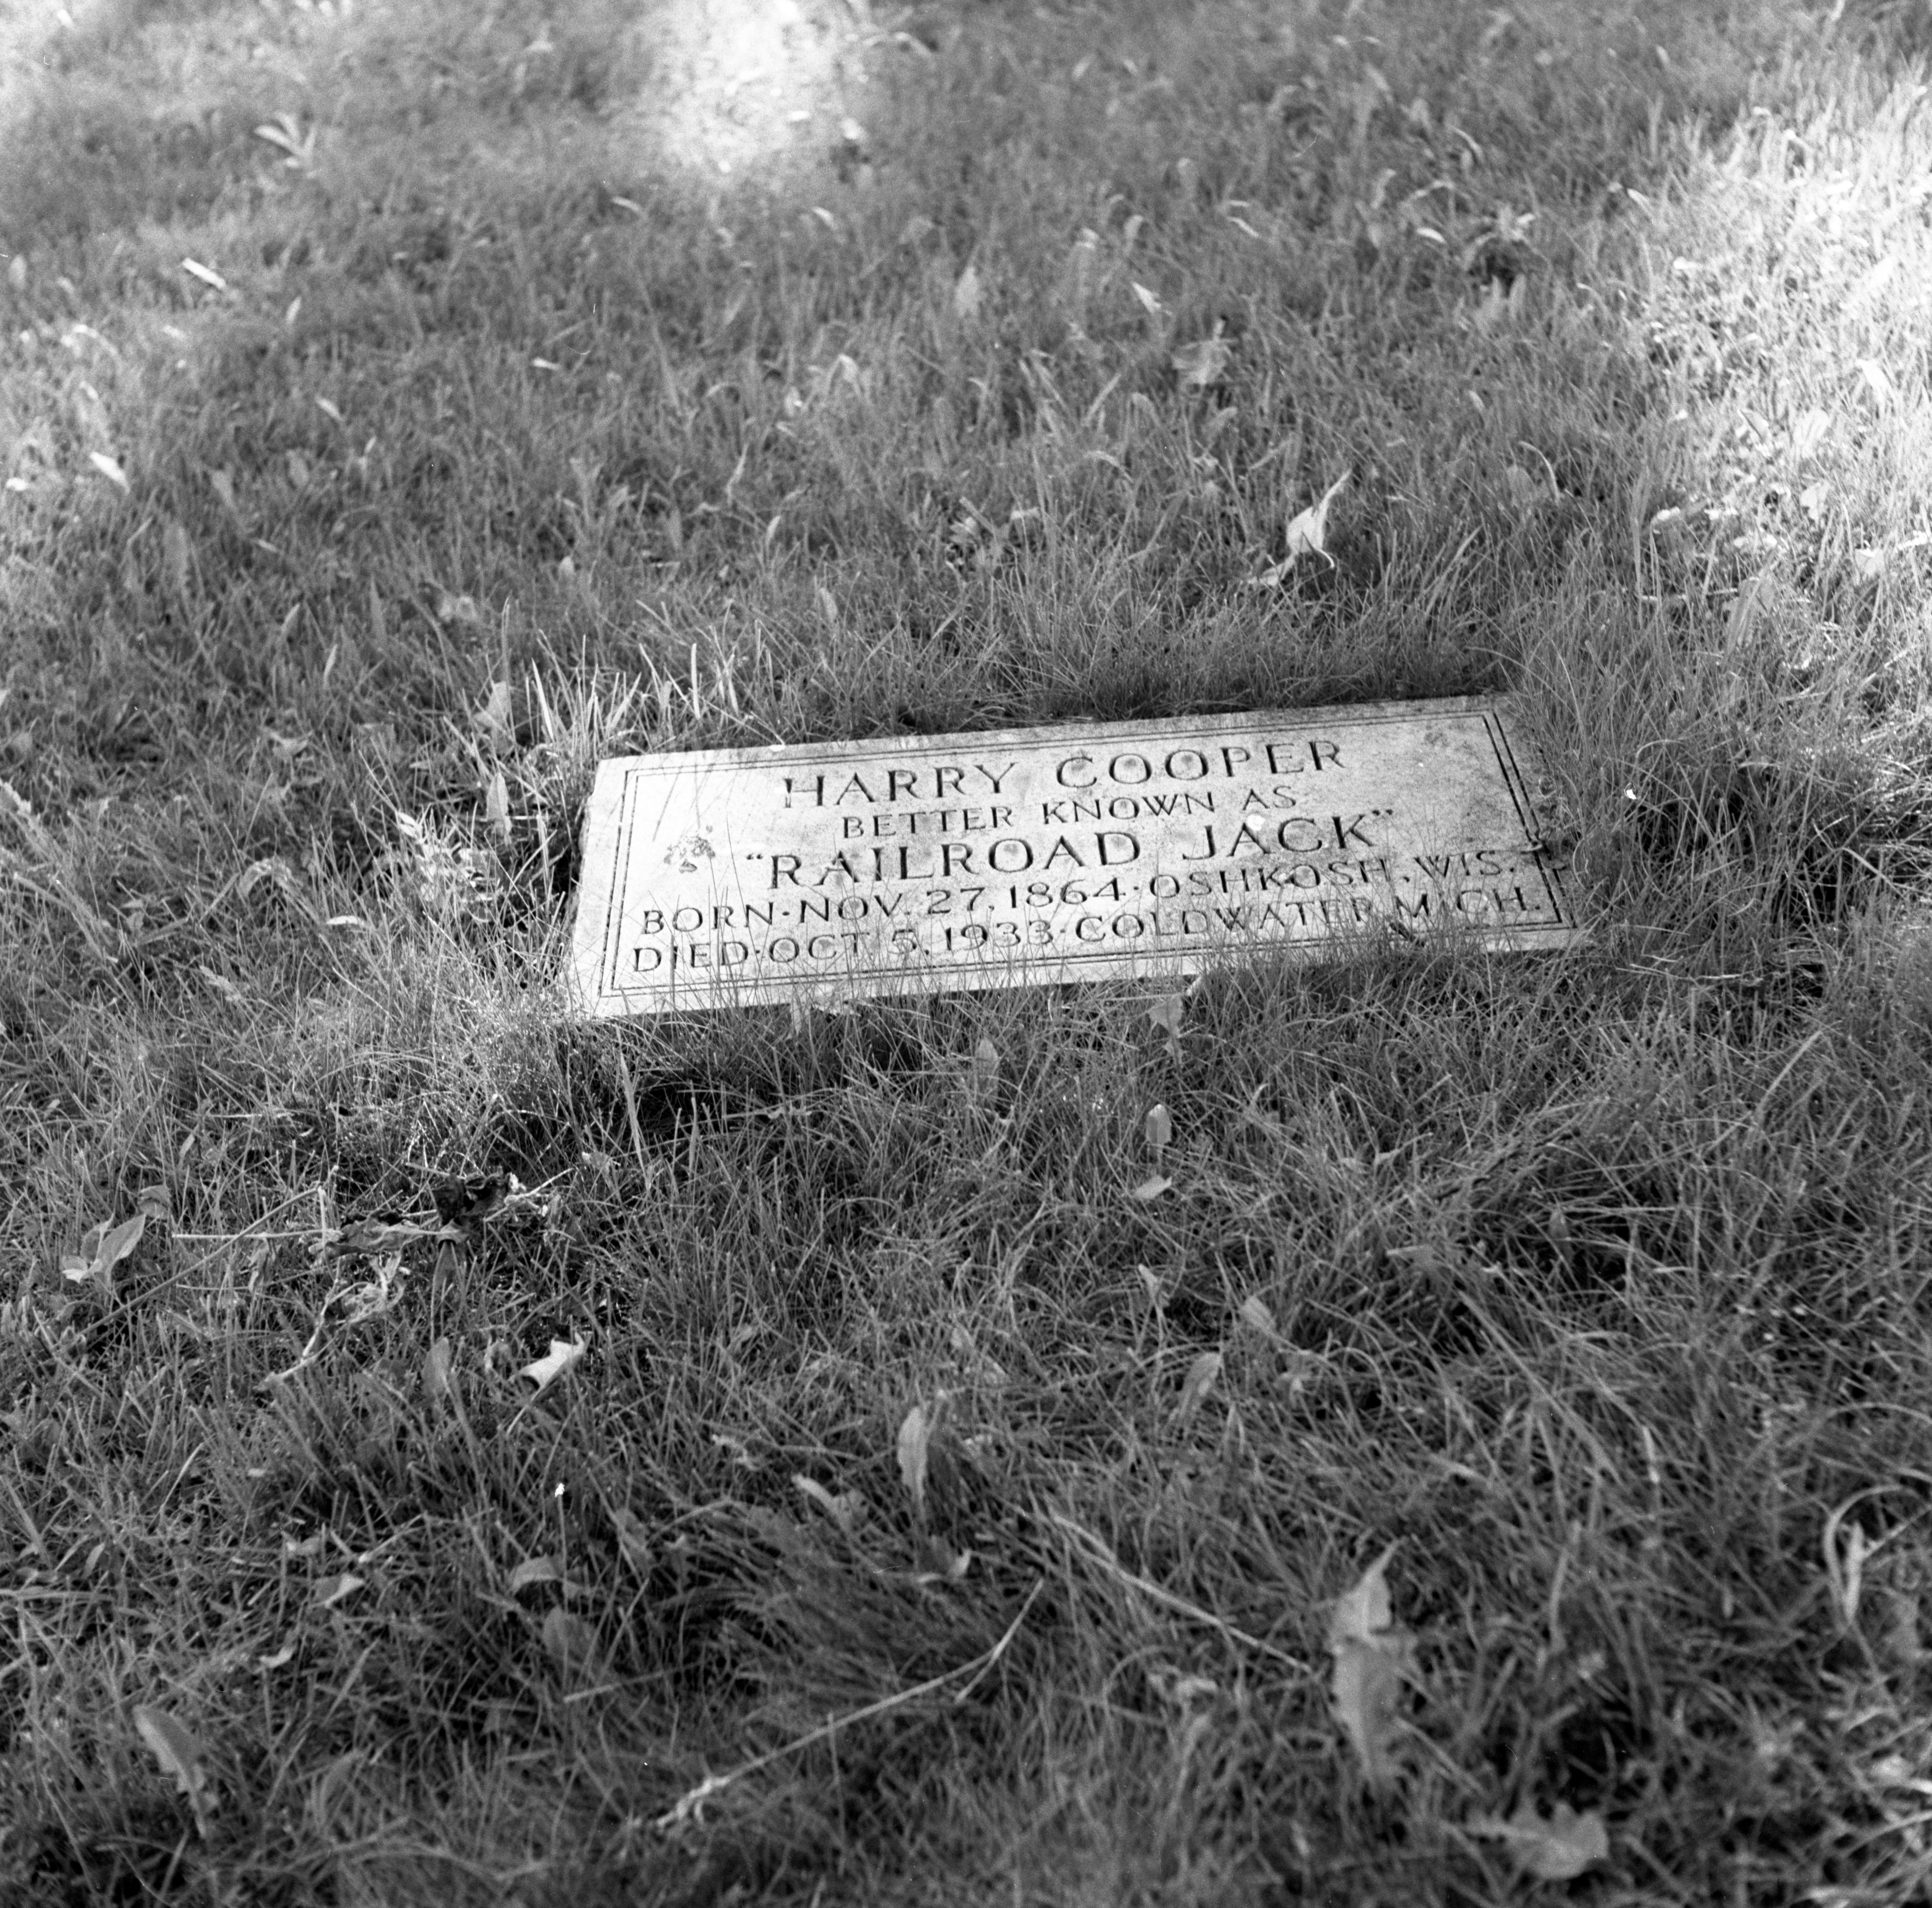 Railroad Jack's Grave - St. Thomas Cemetery, June 1959 image